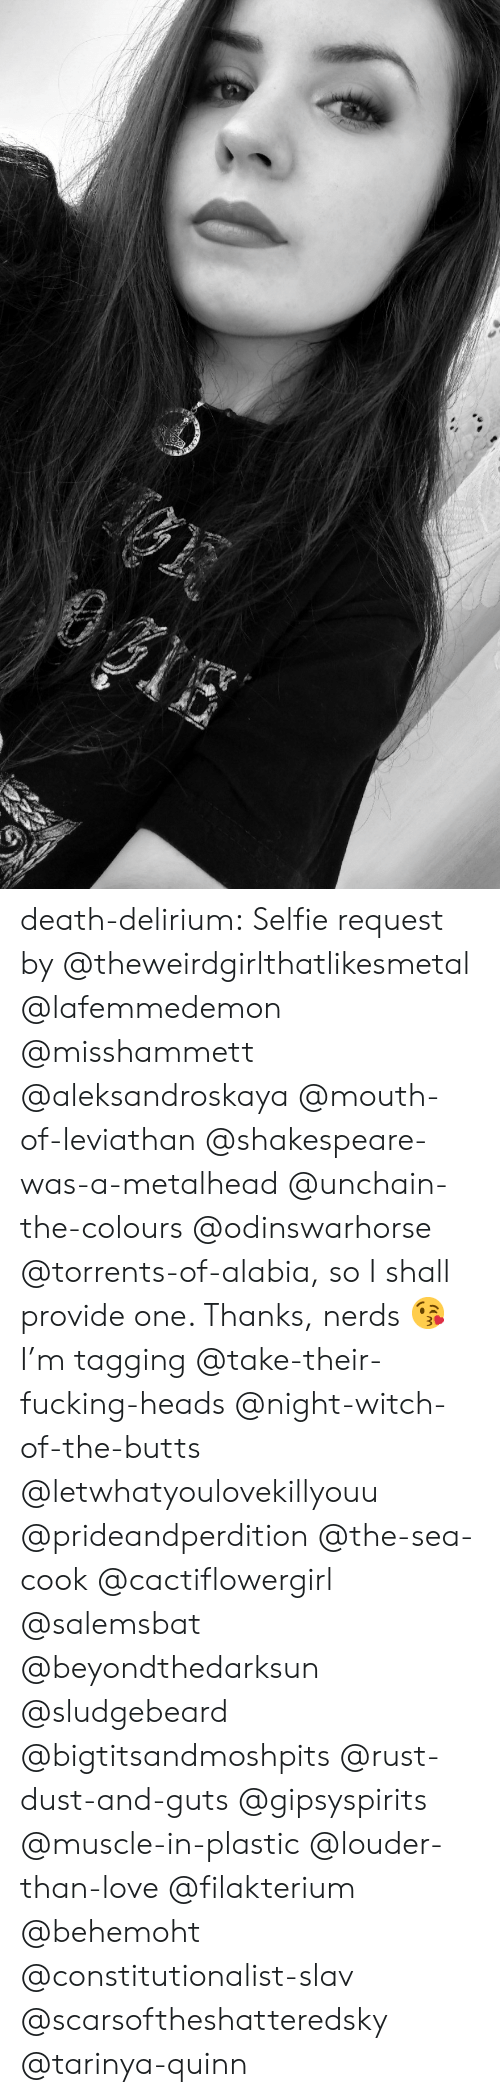 Love, Selfie, and Shakespeare: death-delirium:  Selfie request by @theweirdgirlthatlikesmetal @lafemmedemon @misshammett @aleksandroskaya @mouth-of-leviathan @shakespeare-was-a-metalhead  @unchain-the-colours @odinswarhorse @torrents-of-alabia, so I shall provide one. Thanks, nerds 😘  I'm tagging @take-their-fucking-heads @night-witch-of-the-butts @letwhatyoulovekillyouu @prideandperdition @the-sea-cook @cactiflowergirl @salemsbat @beyondthedarksun @sludgebeard @bigtitsandmoshpits @rust-dust-and-guts @gipsyspirits @muscle-in-plastic @louder-than-love @filakterium @behemoht @constitutionalist-slav @scarsoftheshatteredsky @tarinya-quinn